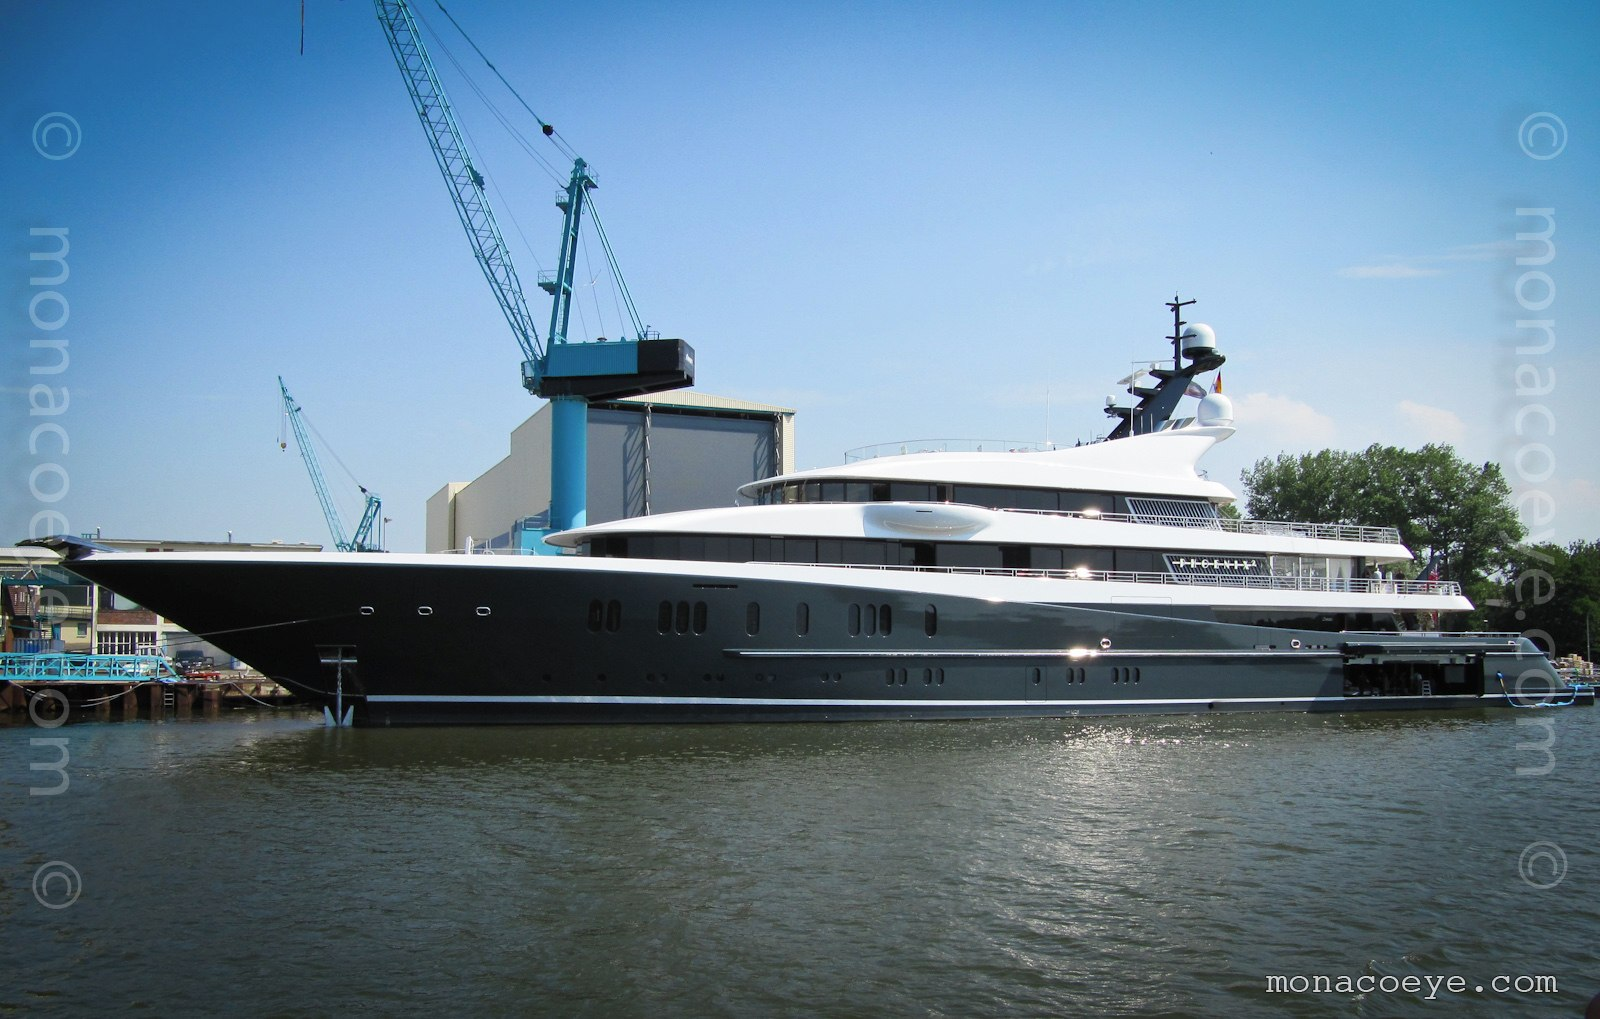 Phoenix 2 yacht. Built by Lurssen, #13659, 2010, 75 metres. Designed by Andrew Winch